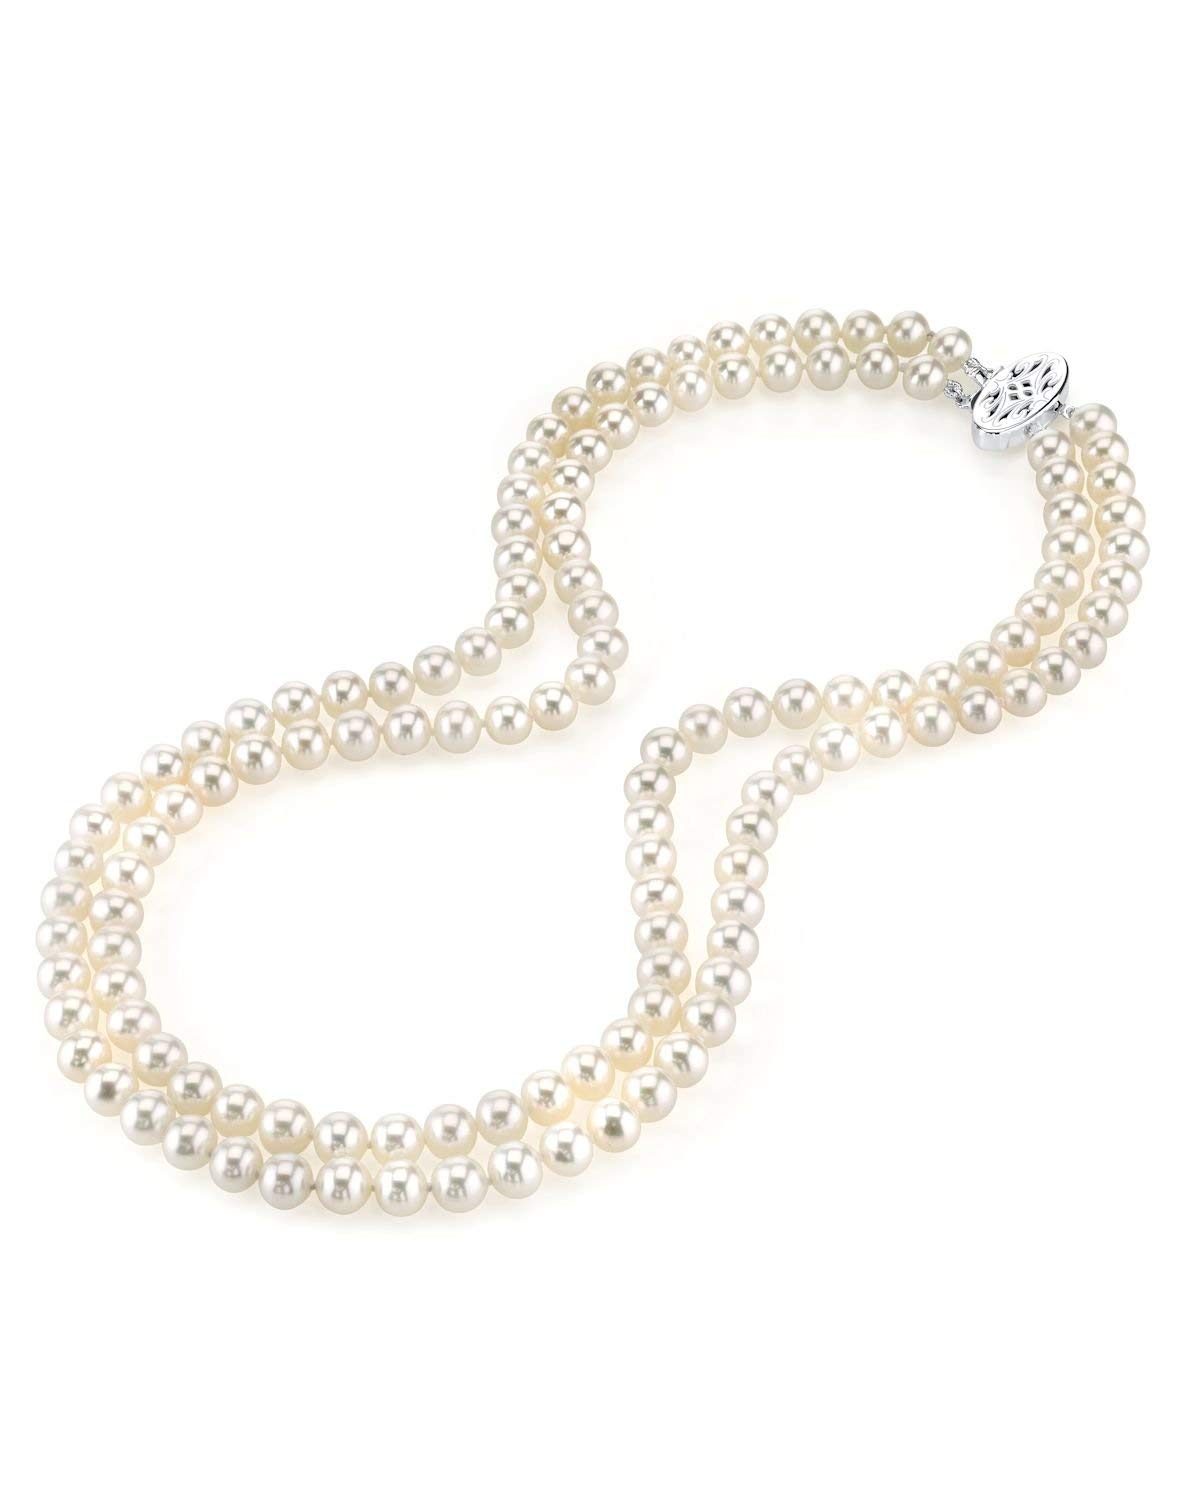 THE PEARL SOURCE 8.0-8.5mm AAA Quality Double Strand White Freshwater Cultured Pearl Necklace for Women in 18-19'' Princess Length